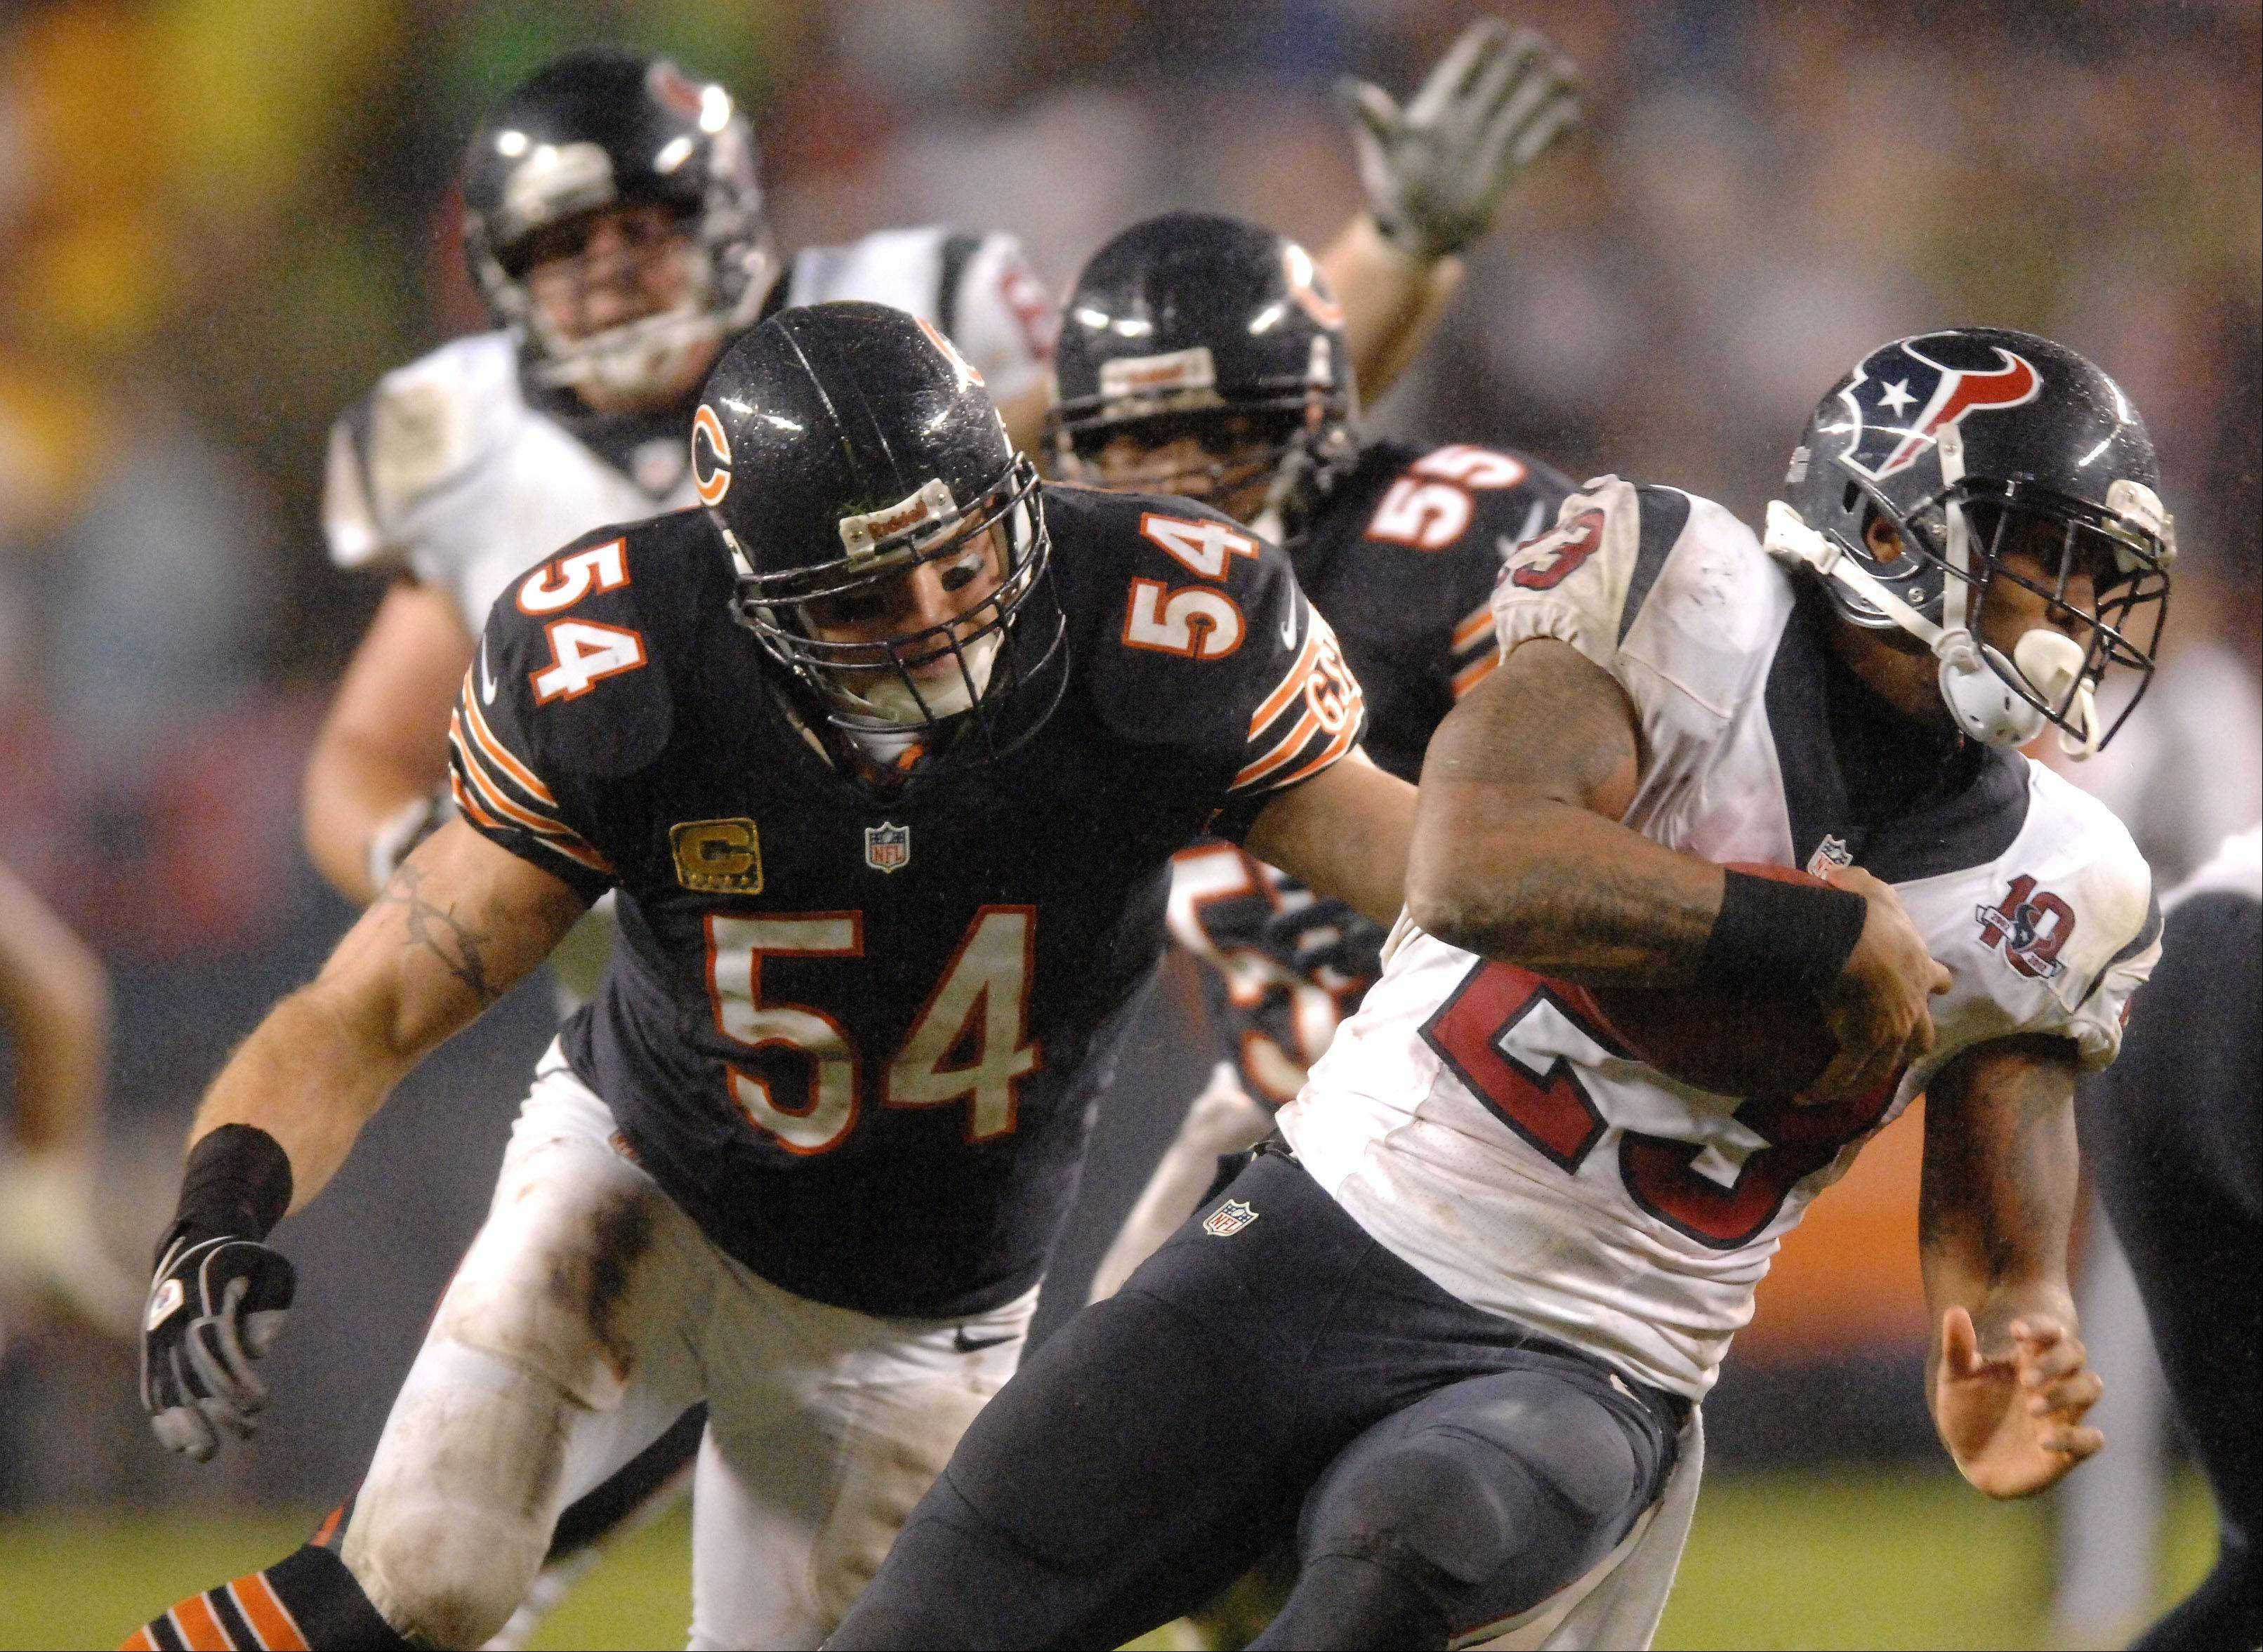 Chicago Bears middle linebacker Brian Urlacher (54) closes in on Houston Texans running back Arian Foster (23) during Sunday's game.